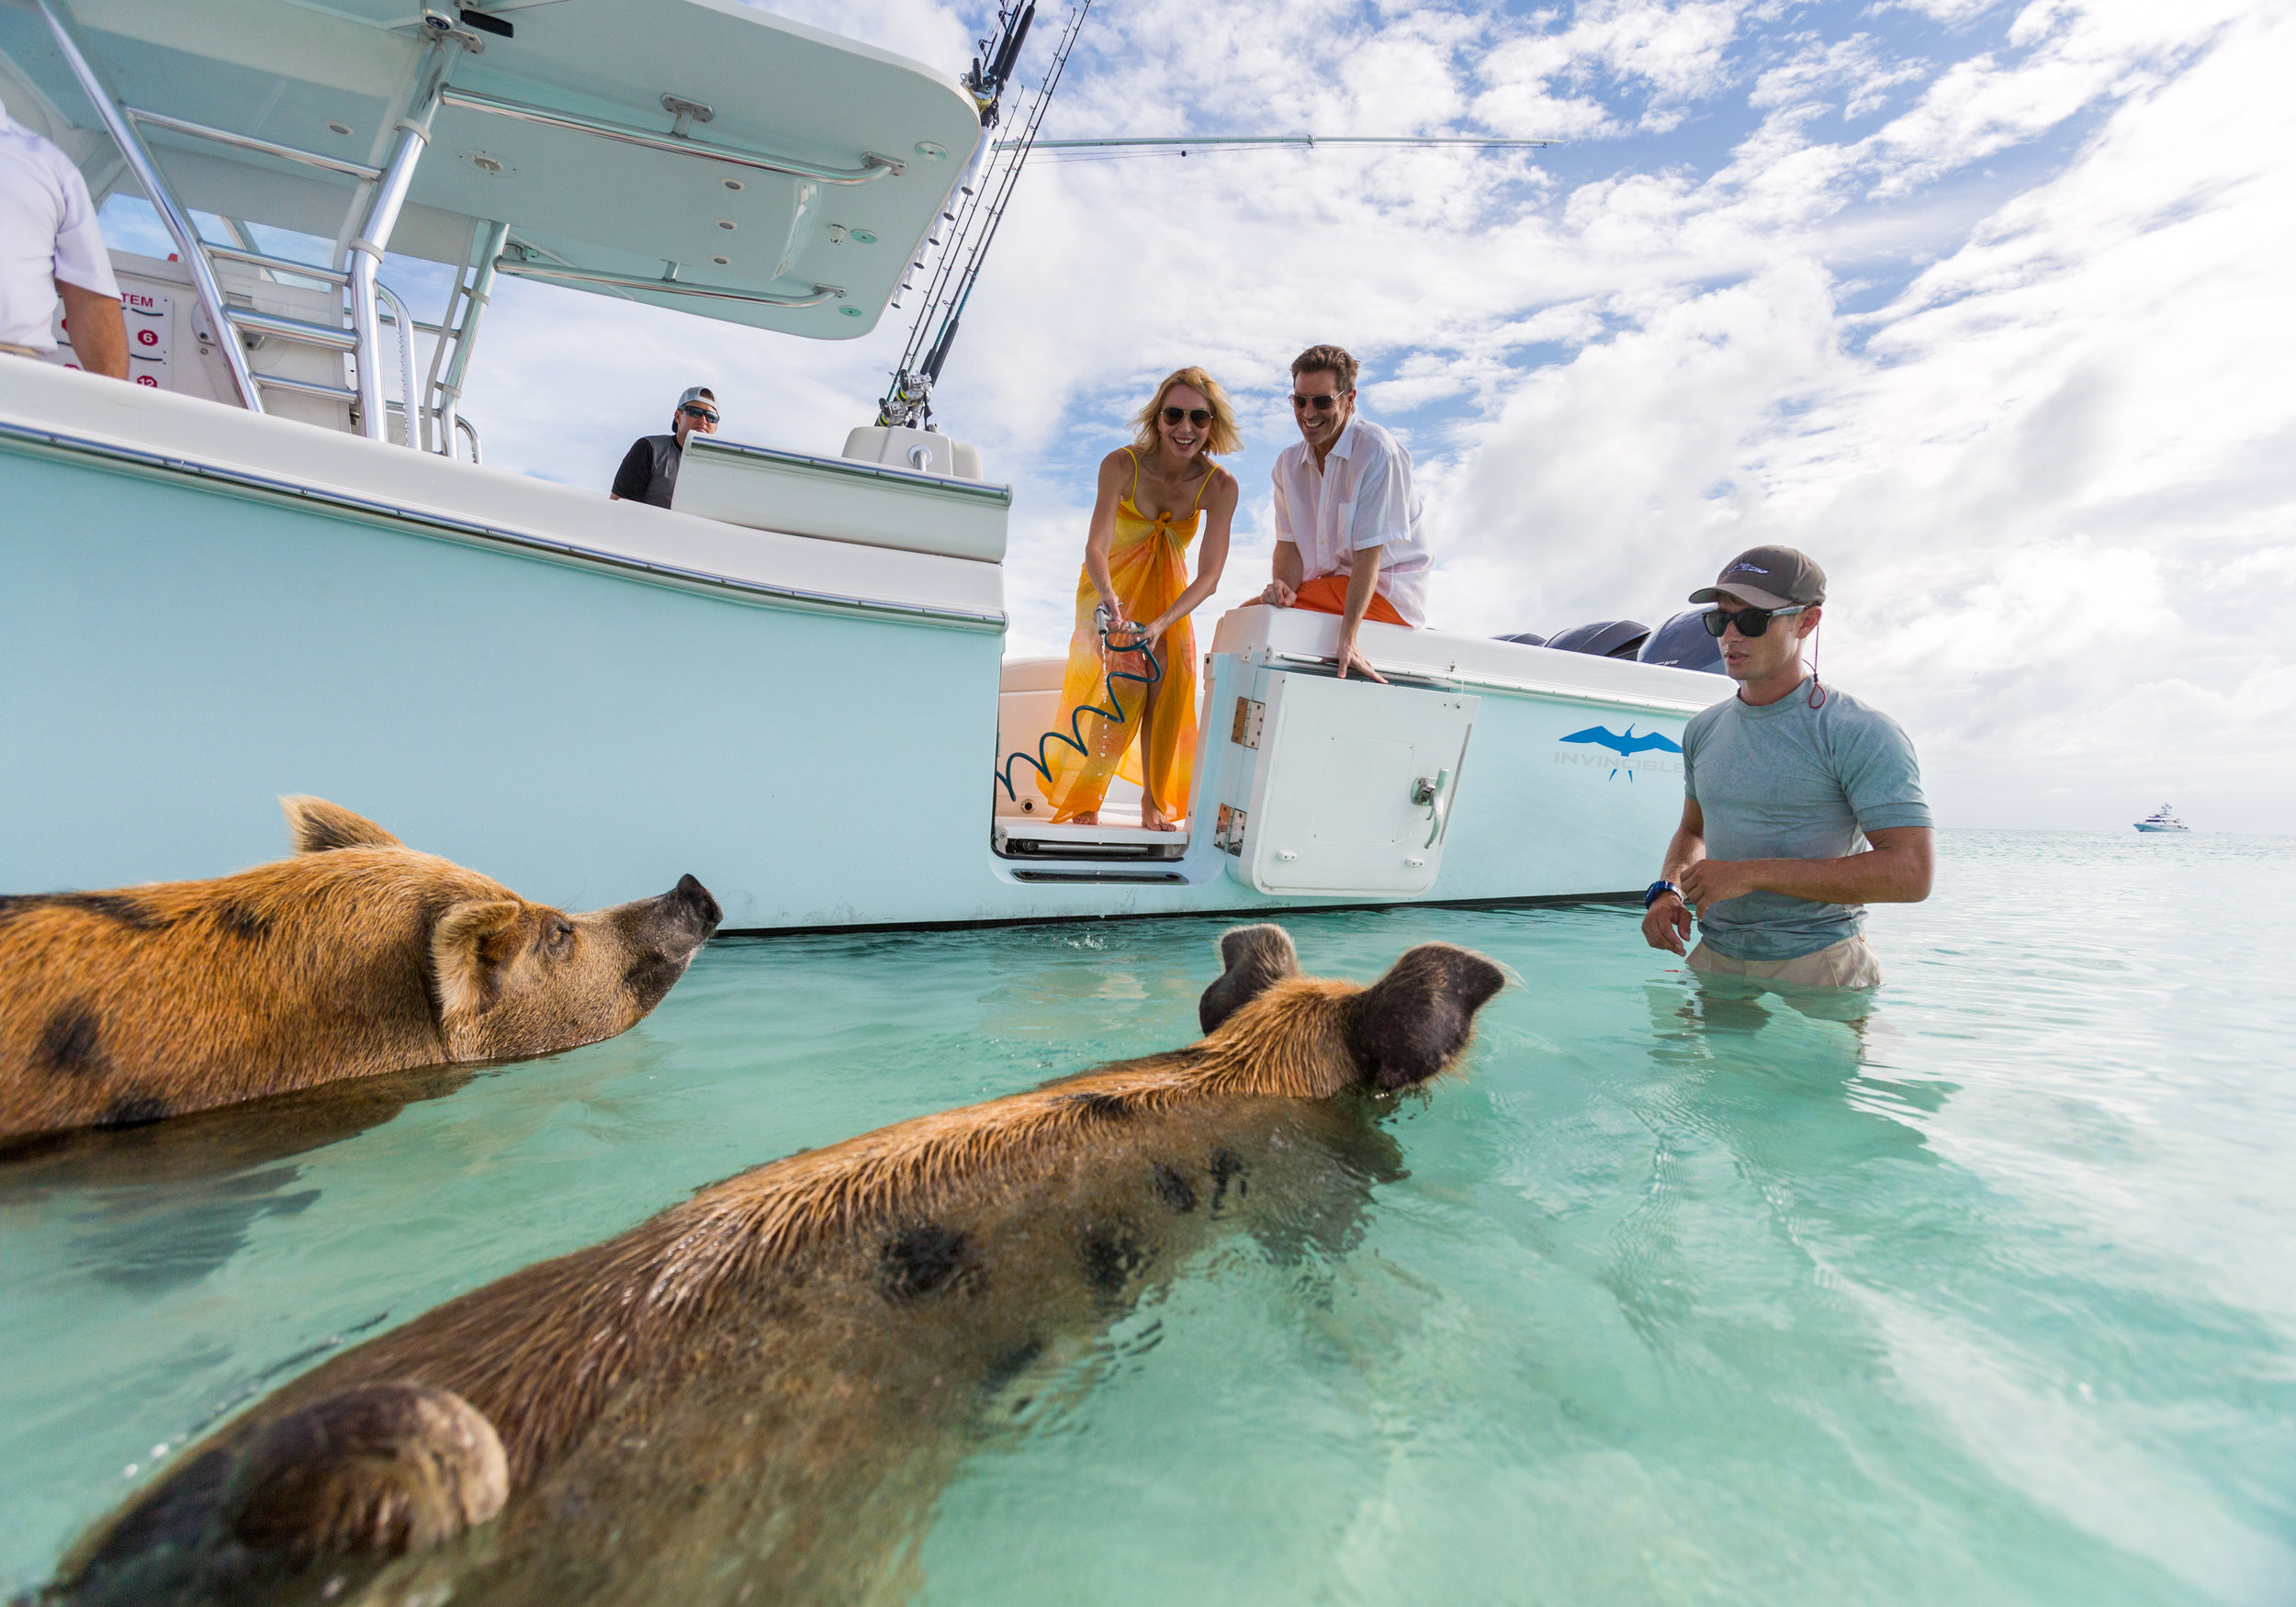 The Exumas offer a plethora of fun activities, the swimming pigs are a family favorite